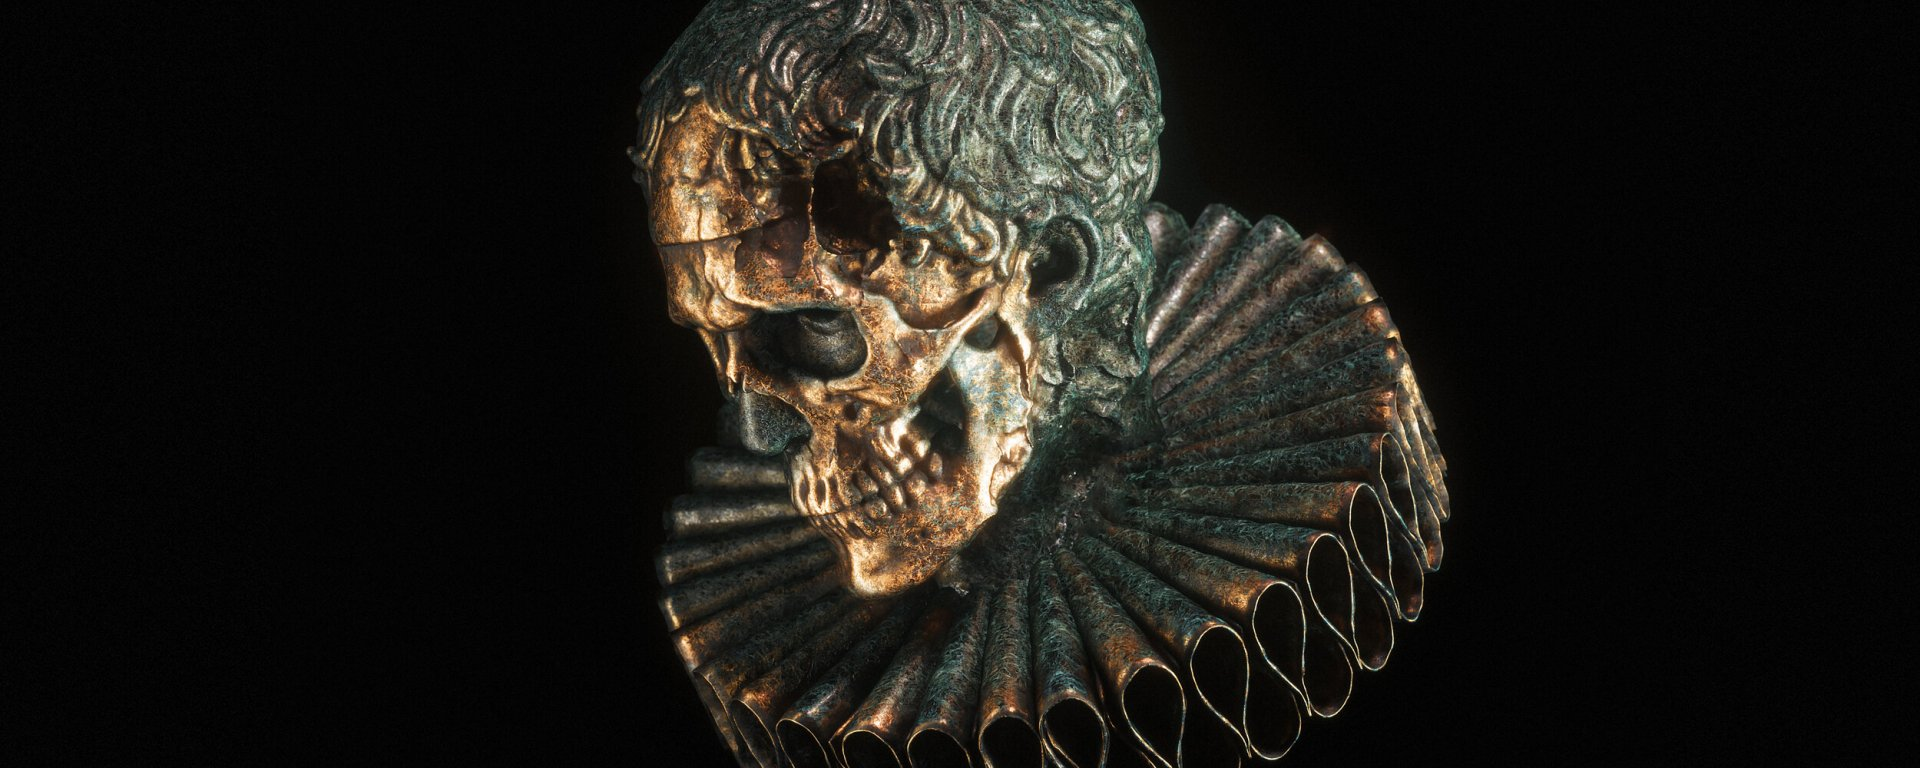 A golden skull with a frilled collar around its neck